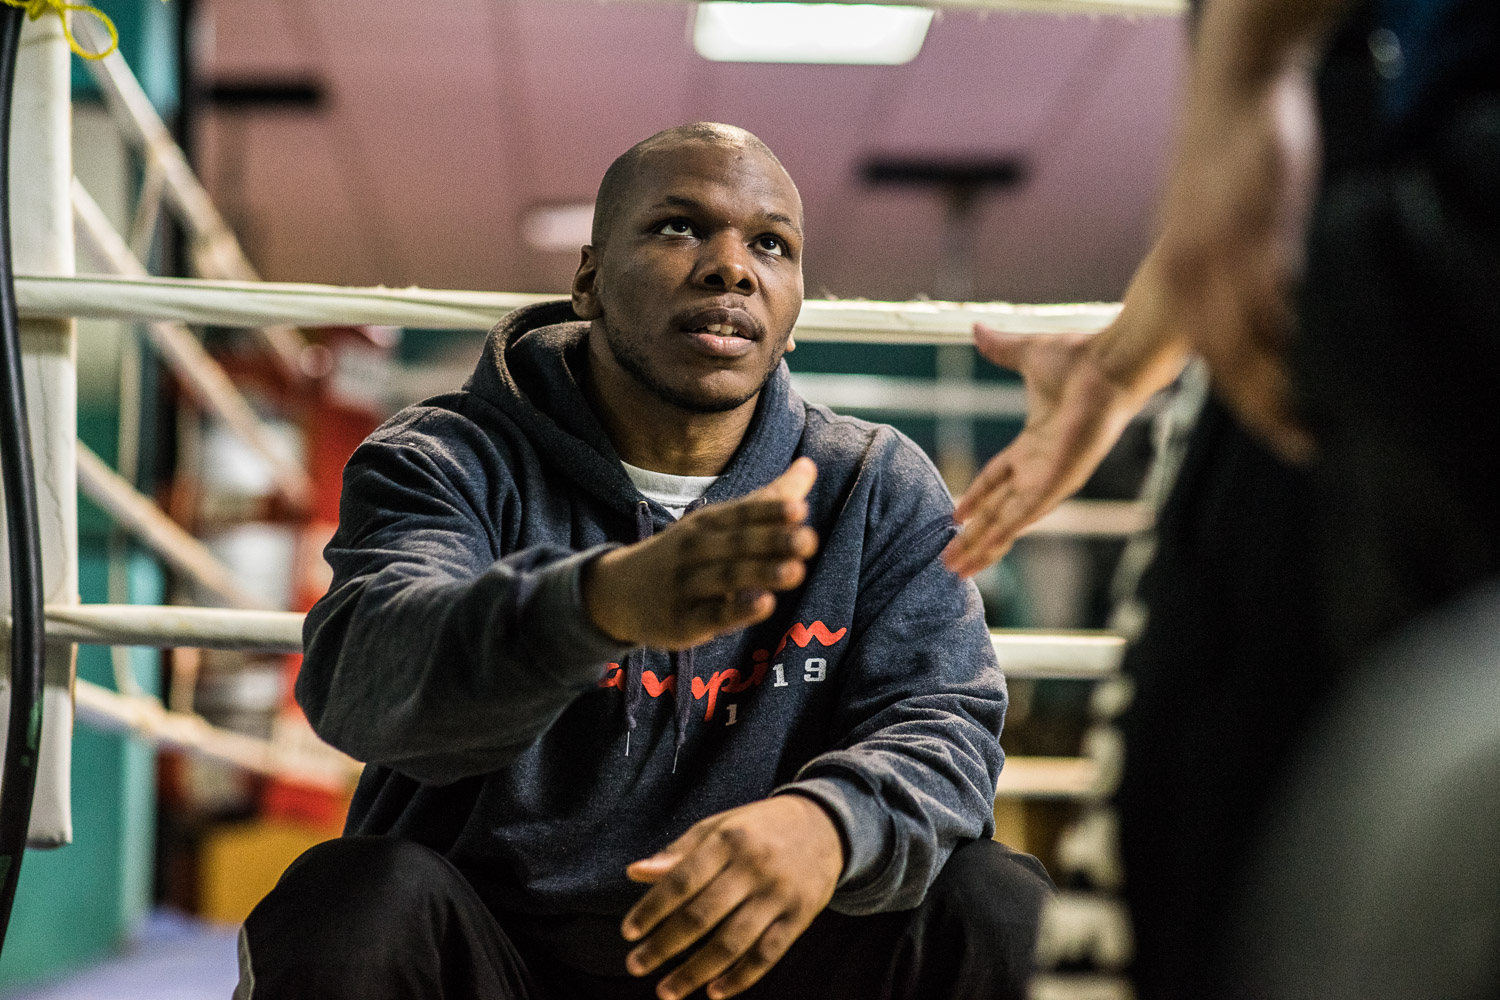 """""""Everyone is welcome here, no matter what skin color you are"""". Dan Mason (26) shakes hands with another boxer."""